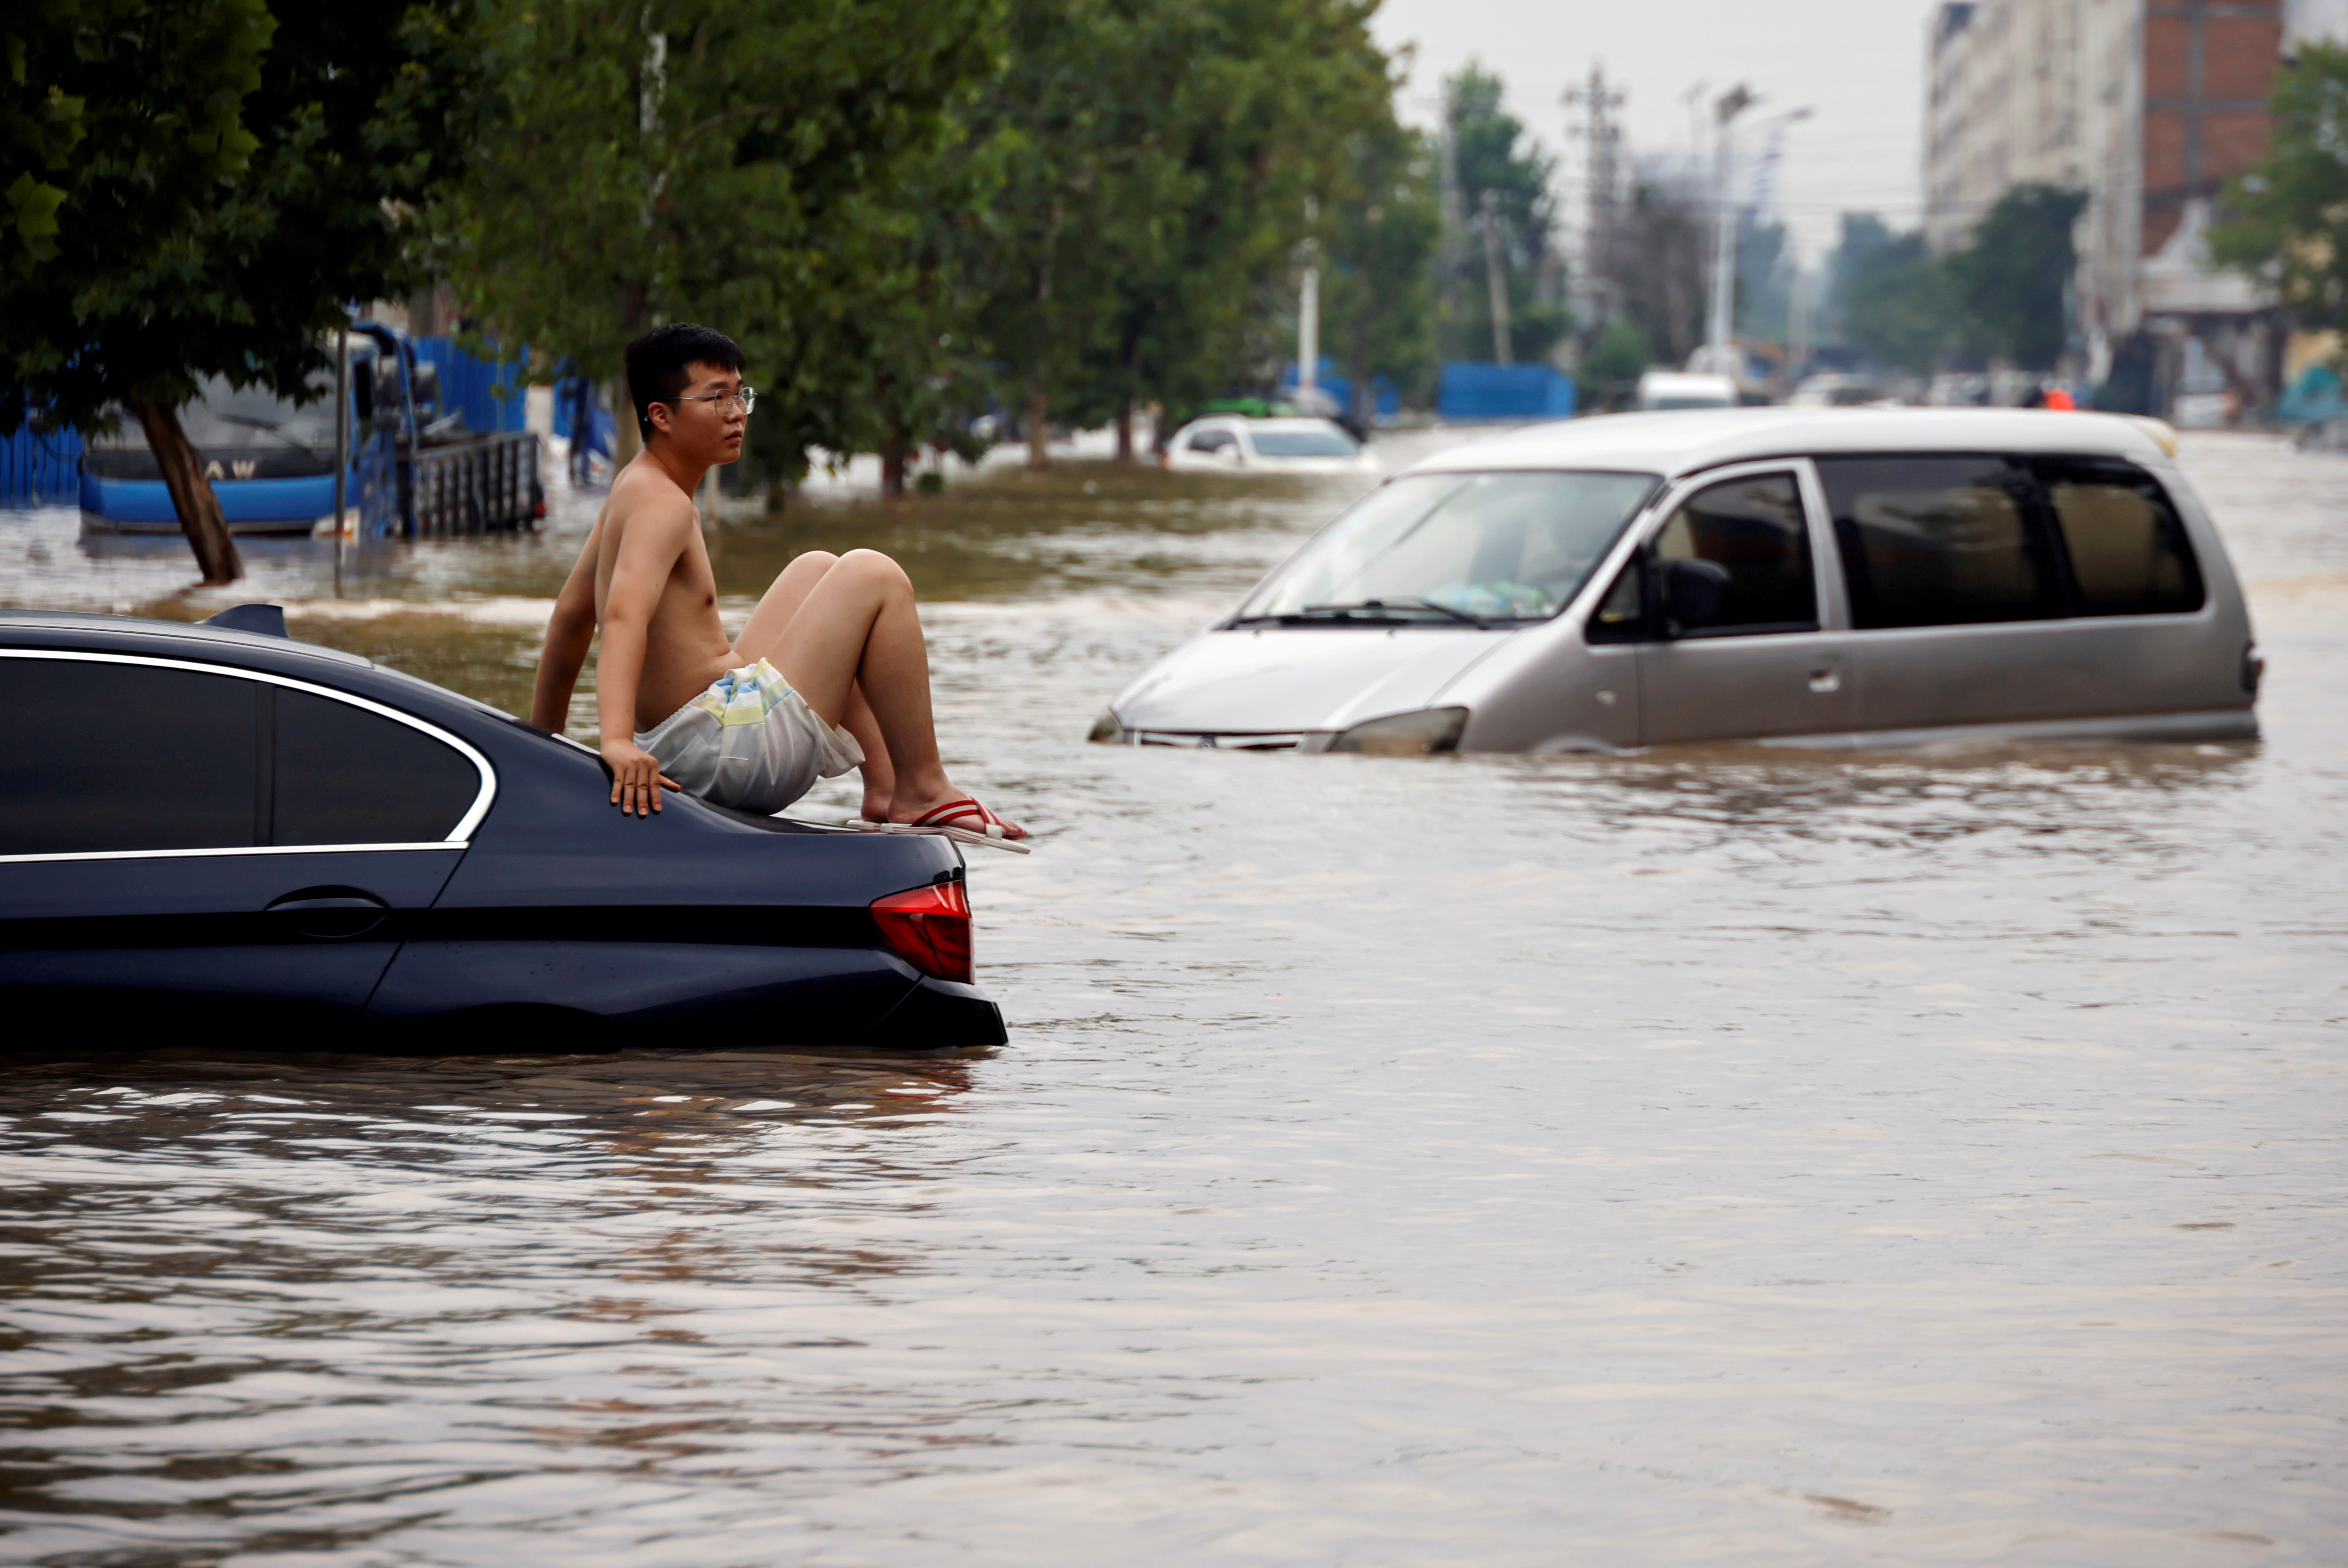 A man sits on a stranded vehicle on a flooded road following heavy rainfall in Zhengzhou, Henan province, China July 22, 2021.  REUTERS/Aly Song/File Photo